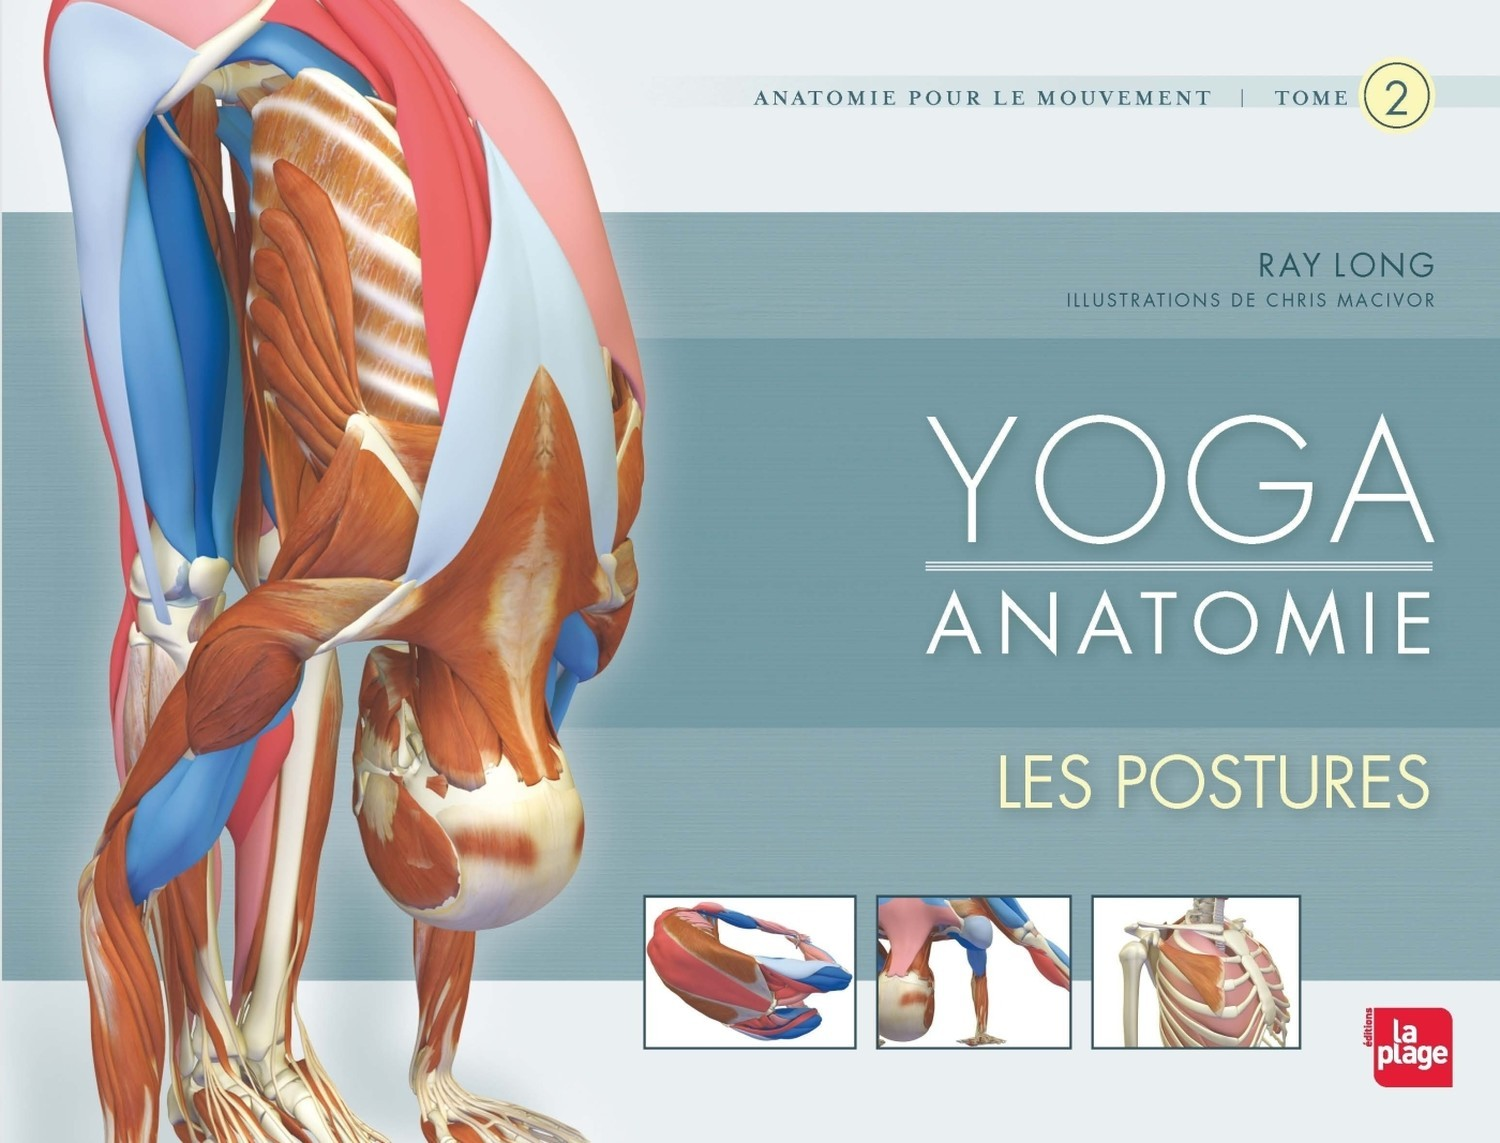 YOGA ANATOMIE LES POSTURES - TOME 2